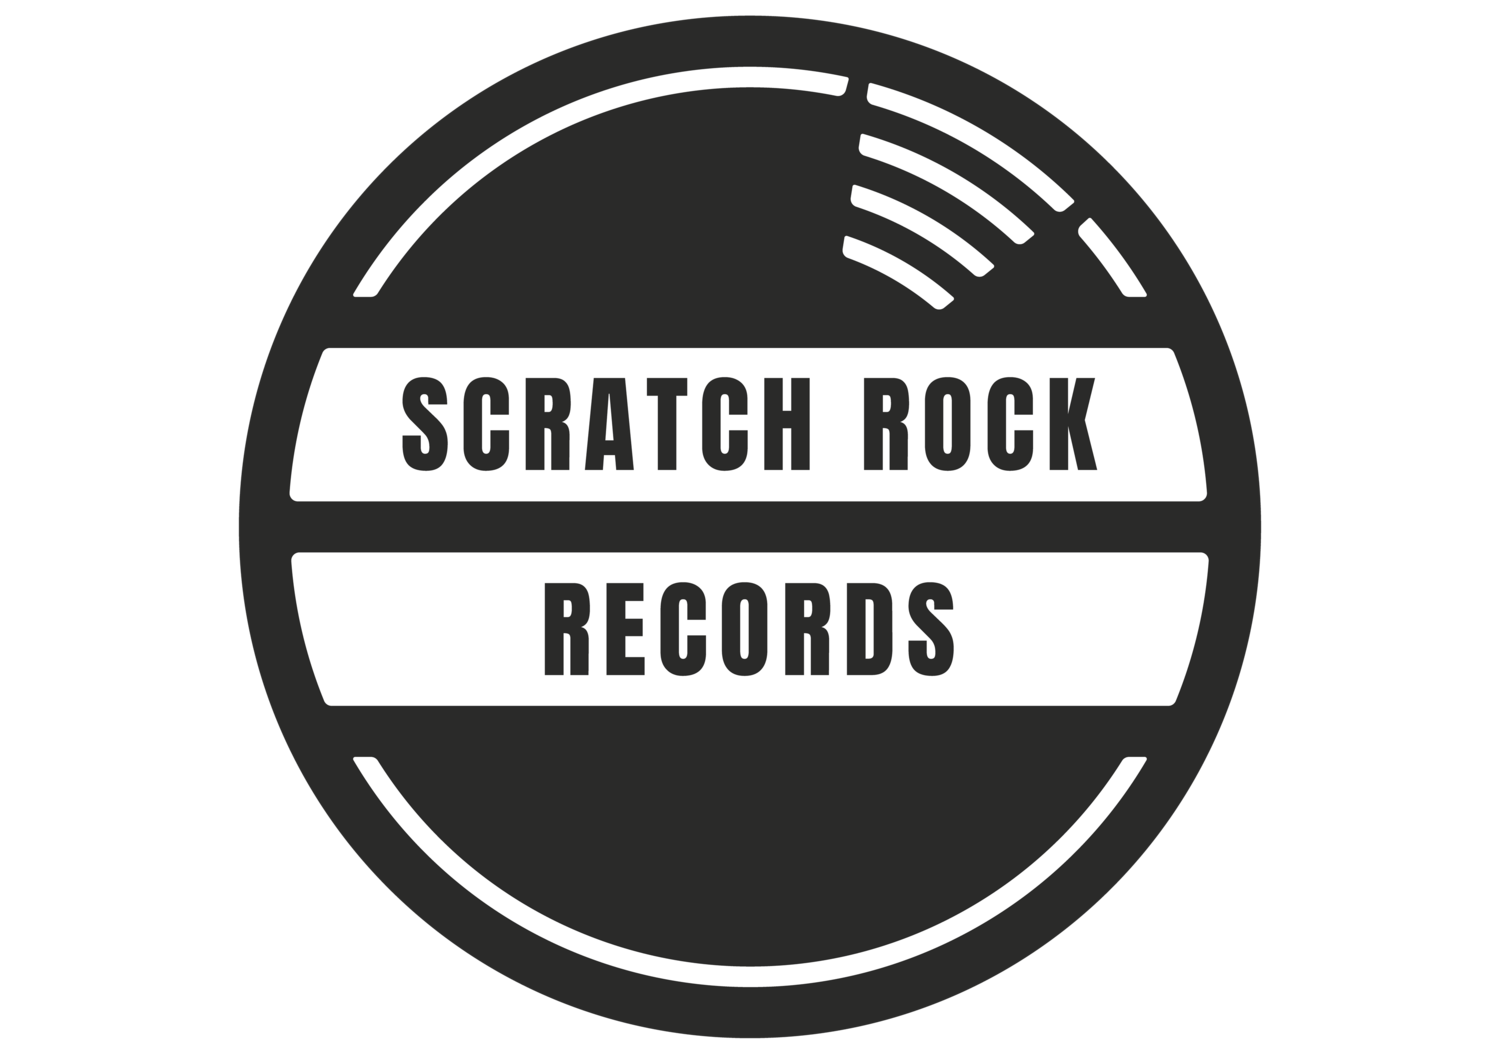 SCRATCH ROCK RECORDS